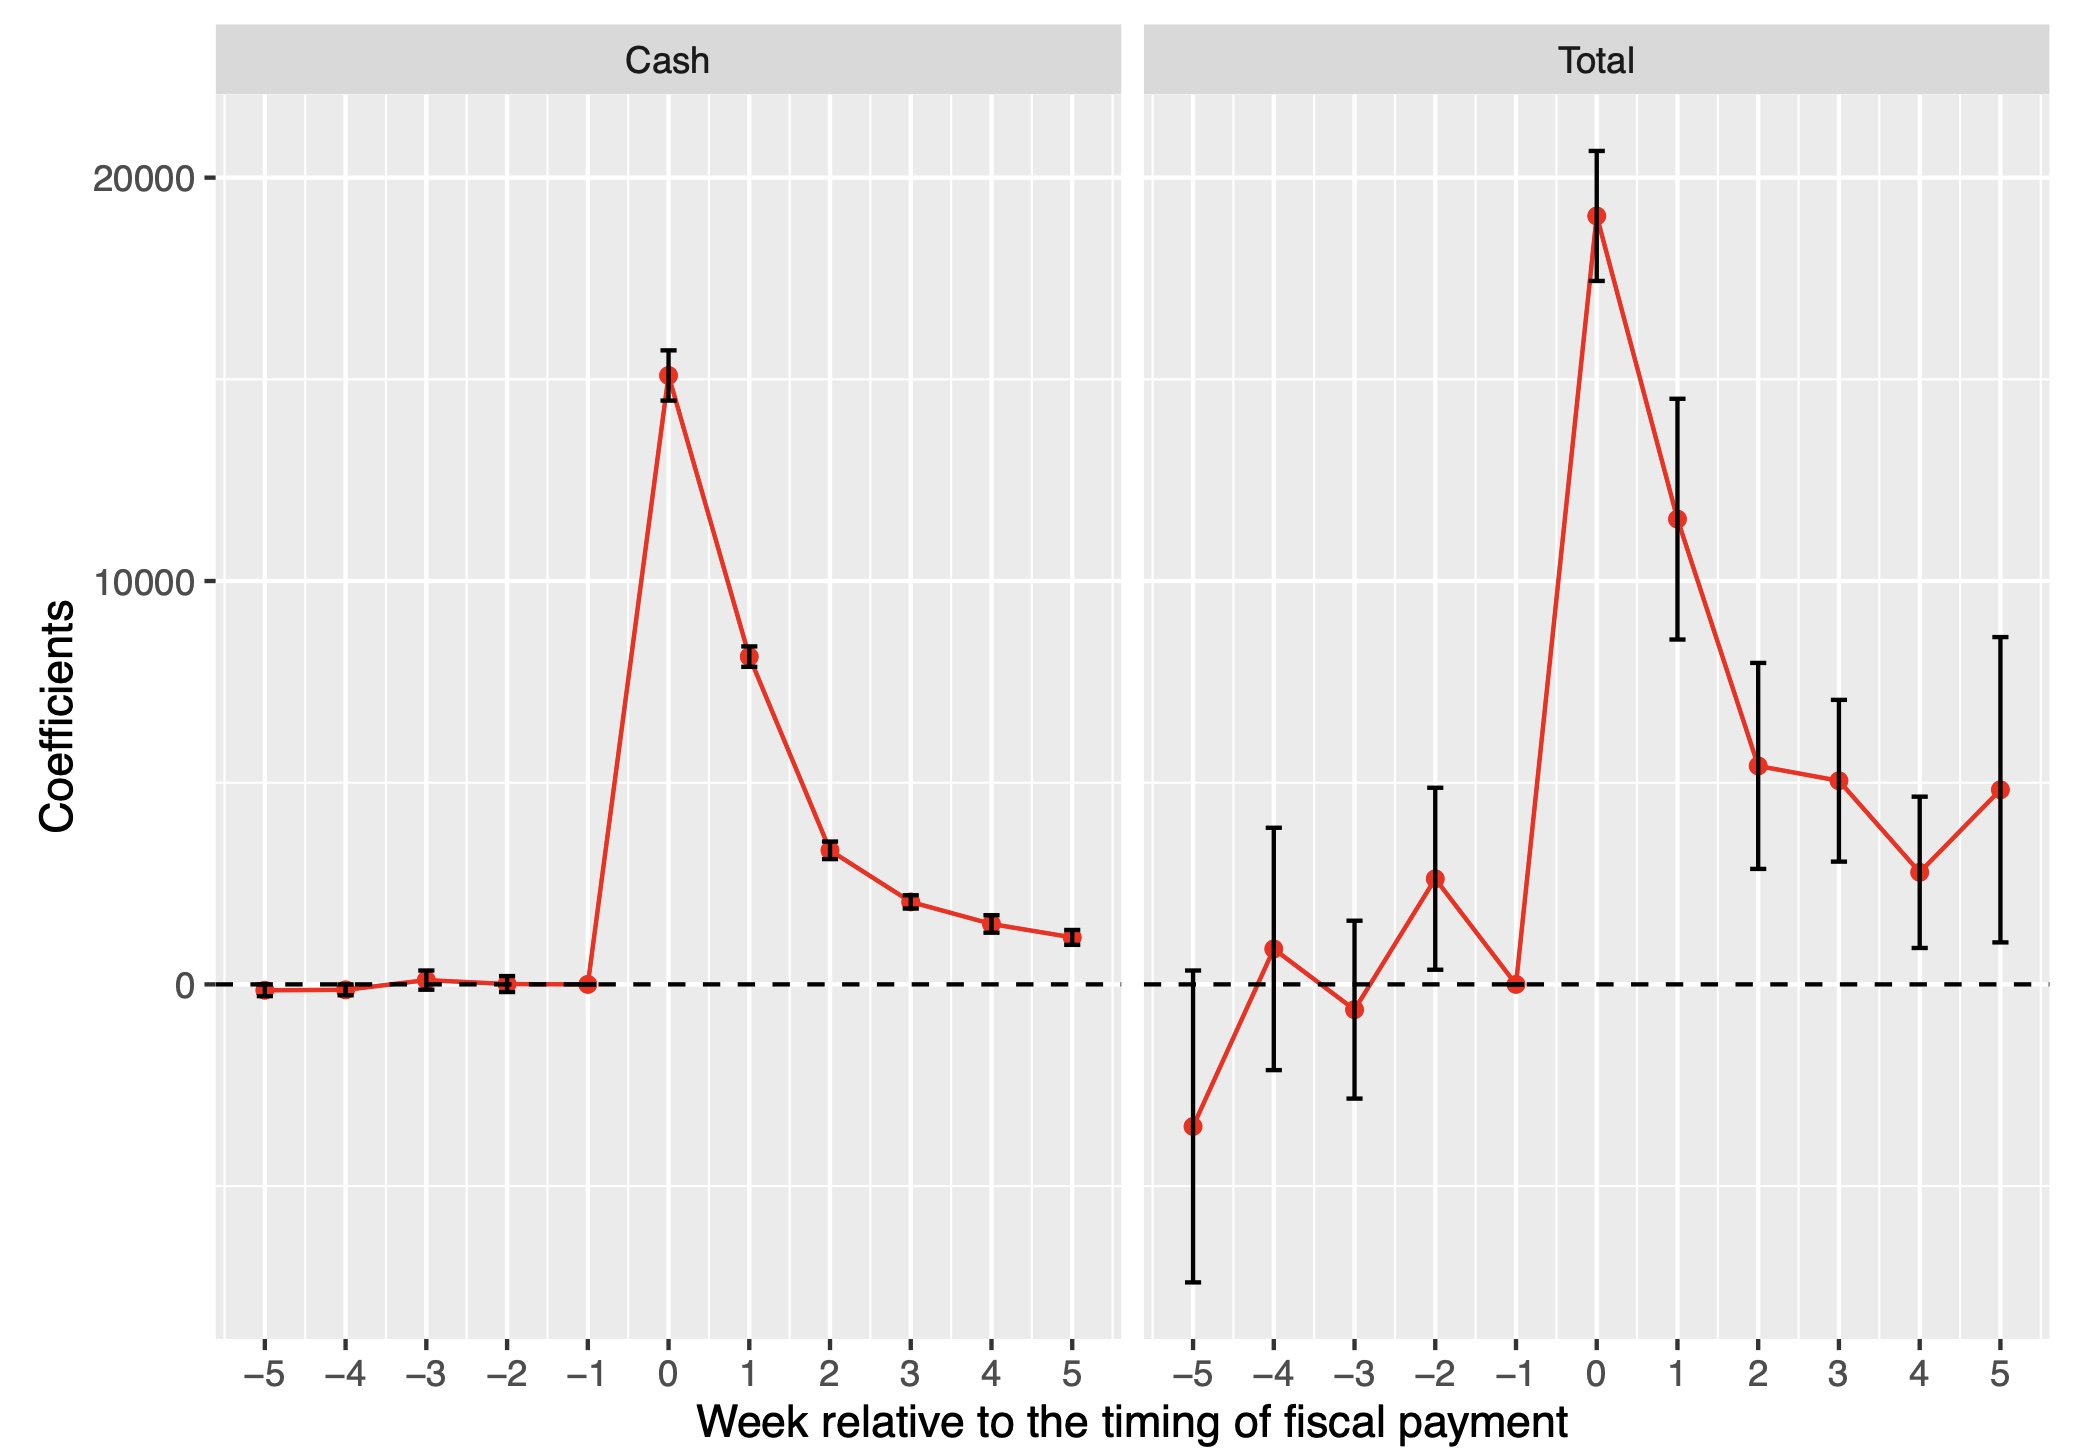 COVID-19 stimulus payments: Evidence from Japan 1